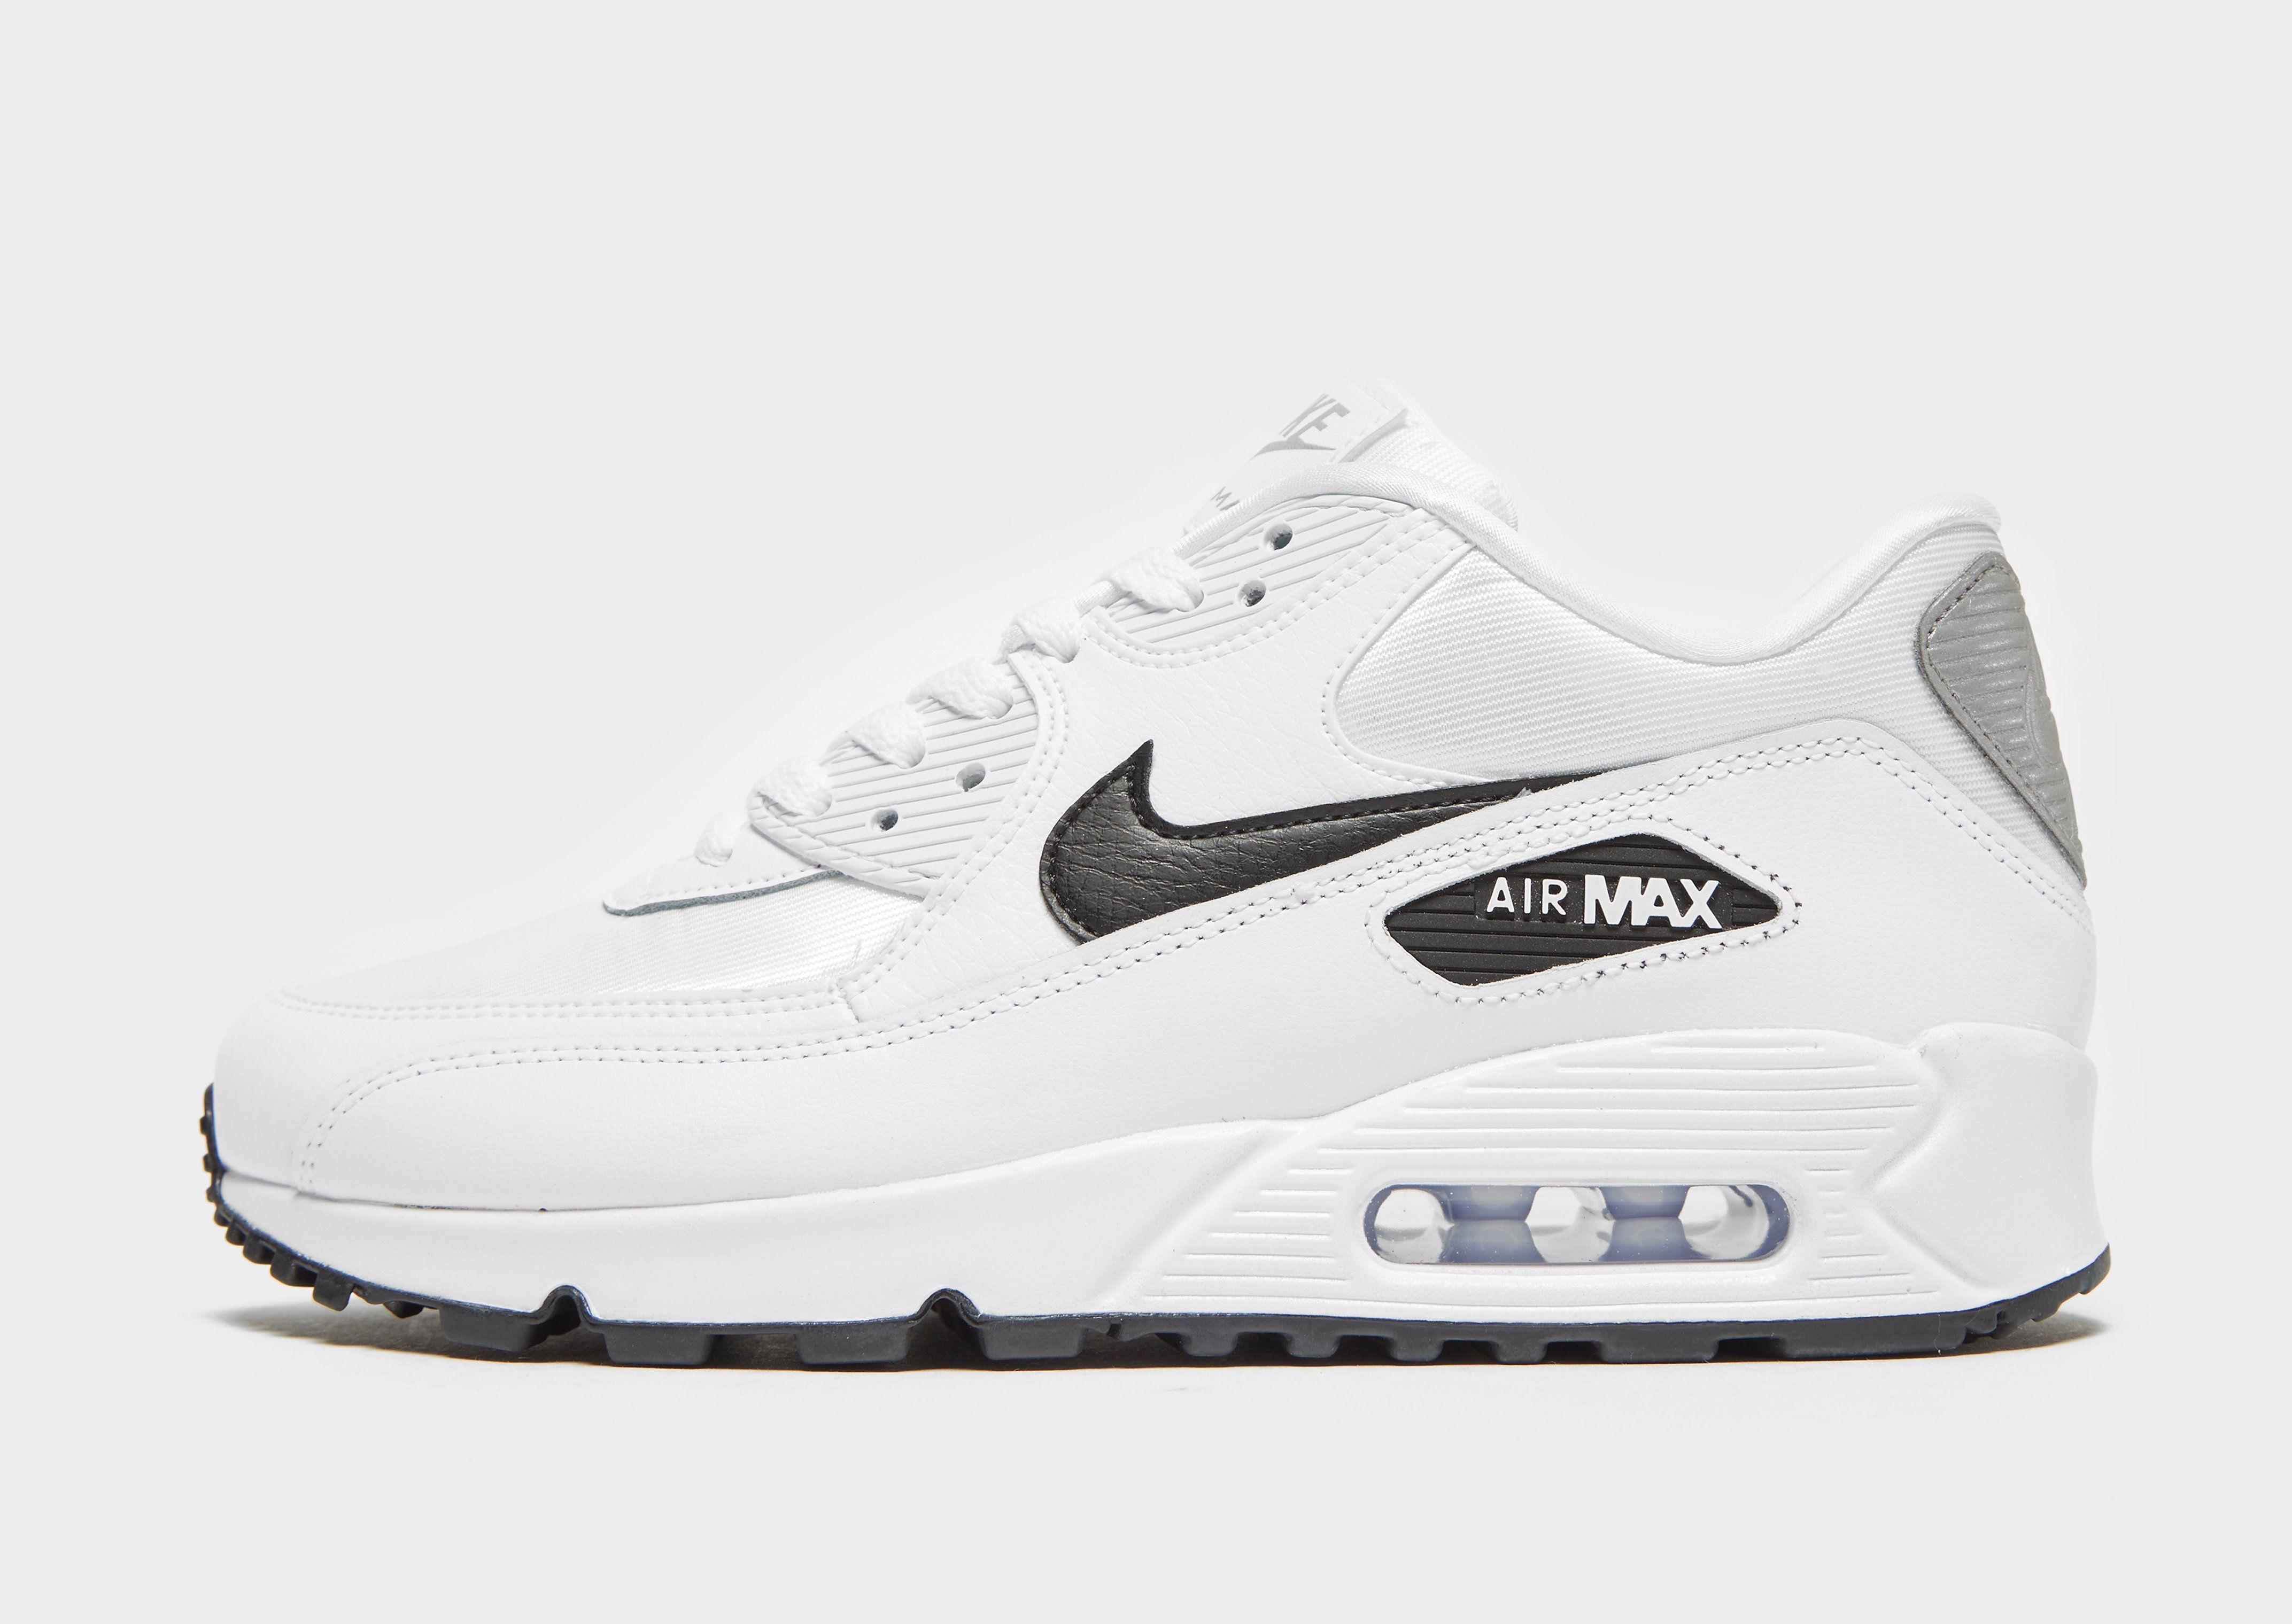 1614a093014d0 ... italy nike air max 90 womens shop online for nike air max 90 womens  with jd